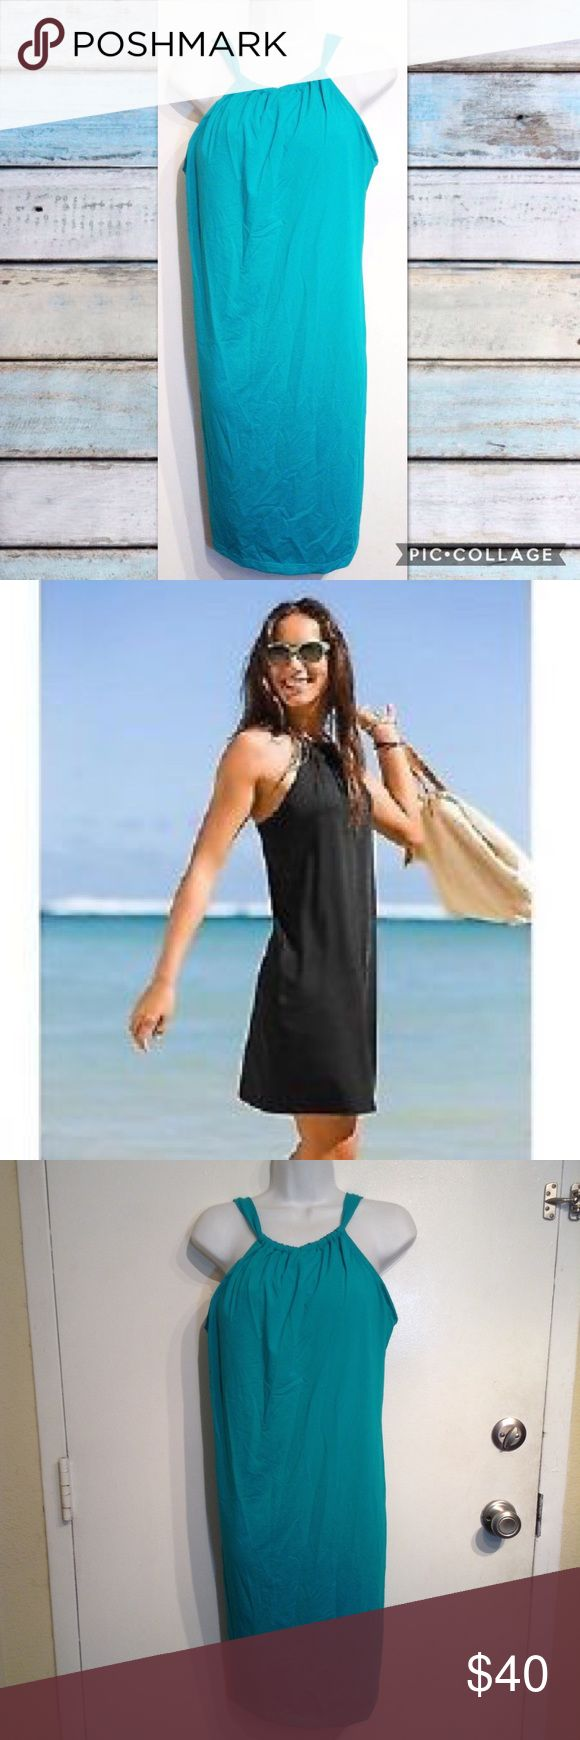 """ATHLETA Kokomo Teal Tie Back Swim Dress ATHLETA Kokomo swim dress. Ties in back so straps can be worn normally or crossed in back. 2nd photo is stock photo of same item in different color to show fit. Stretchy quick dry swimsuit material but in a regular length dress. Does not have built in bottoms so you can wear your own. Built in bra. Perfect for swimming, working out, or just a hot summer day. Size large. Measures 16.5"""" flat from armpit to armpit and 40"""" long. Smoke free home. I do…"""